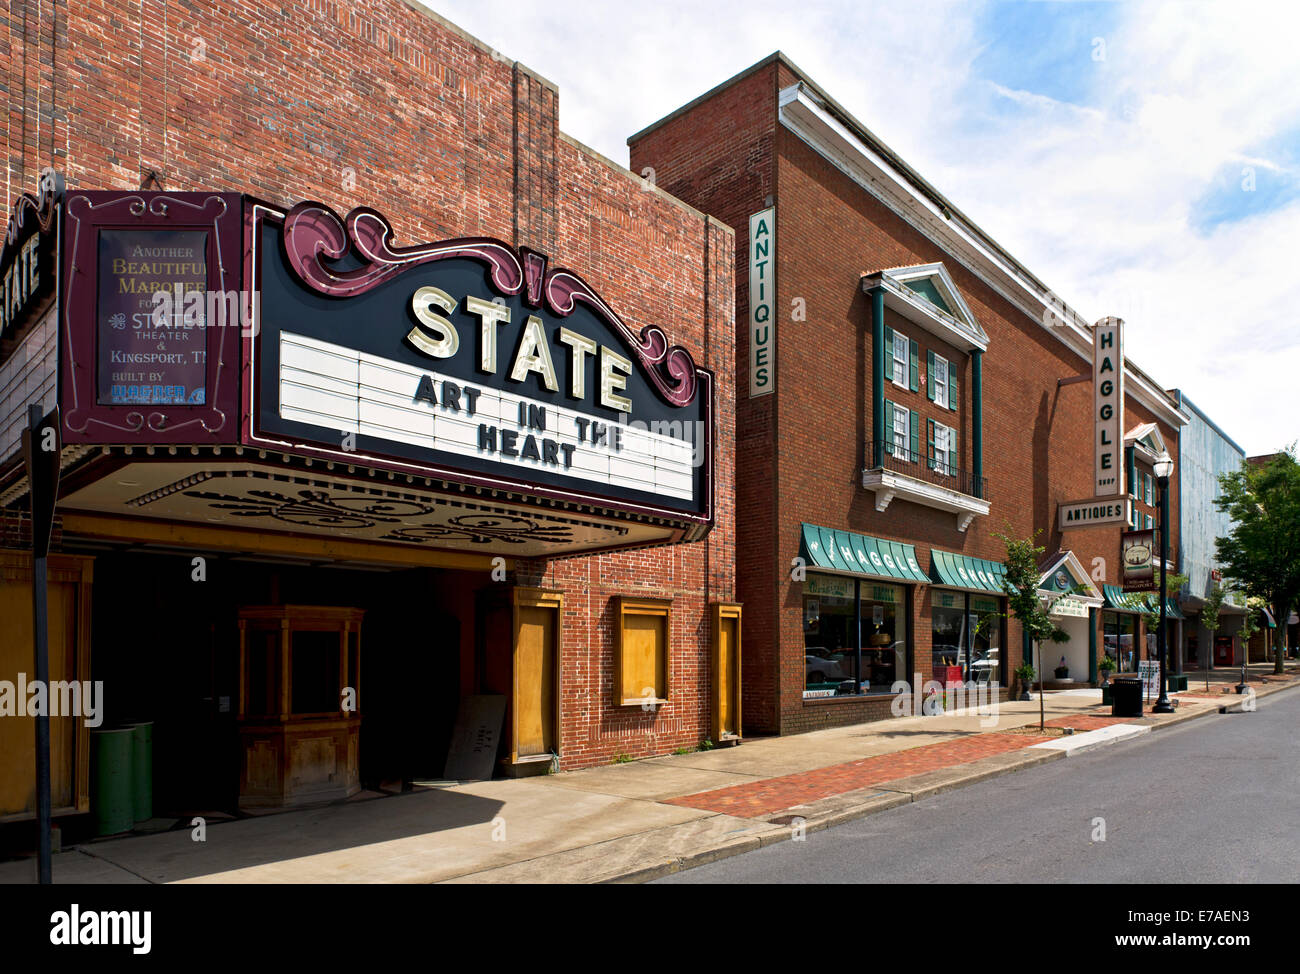 the old state theater building and marquee kingsport